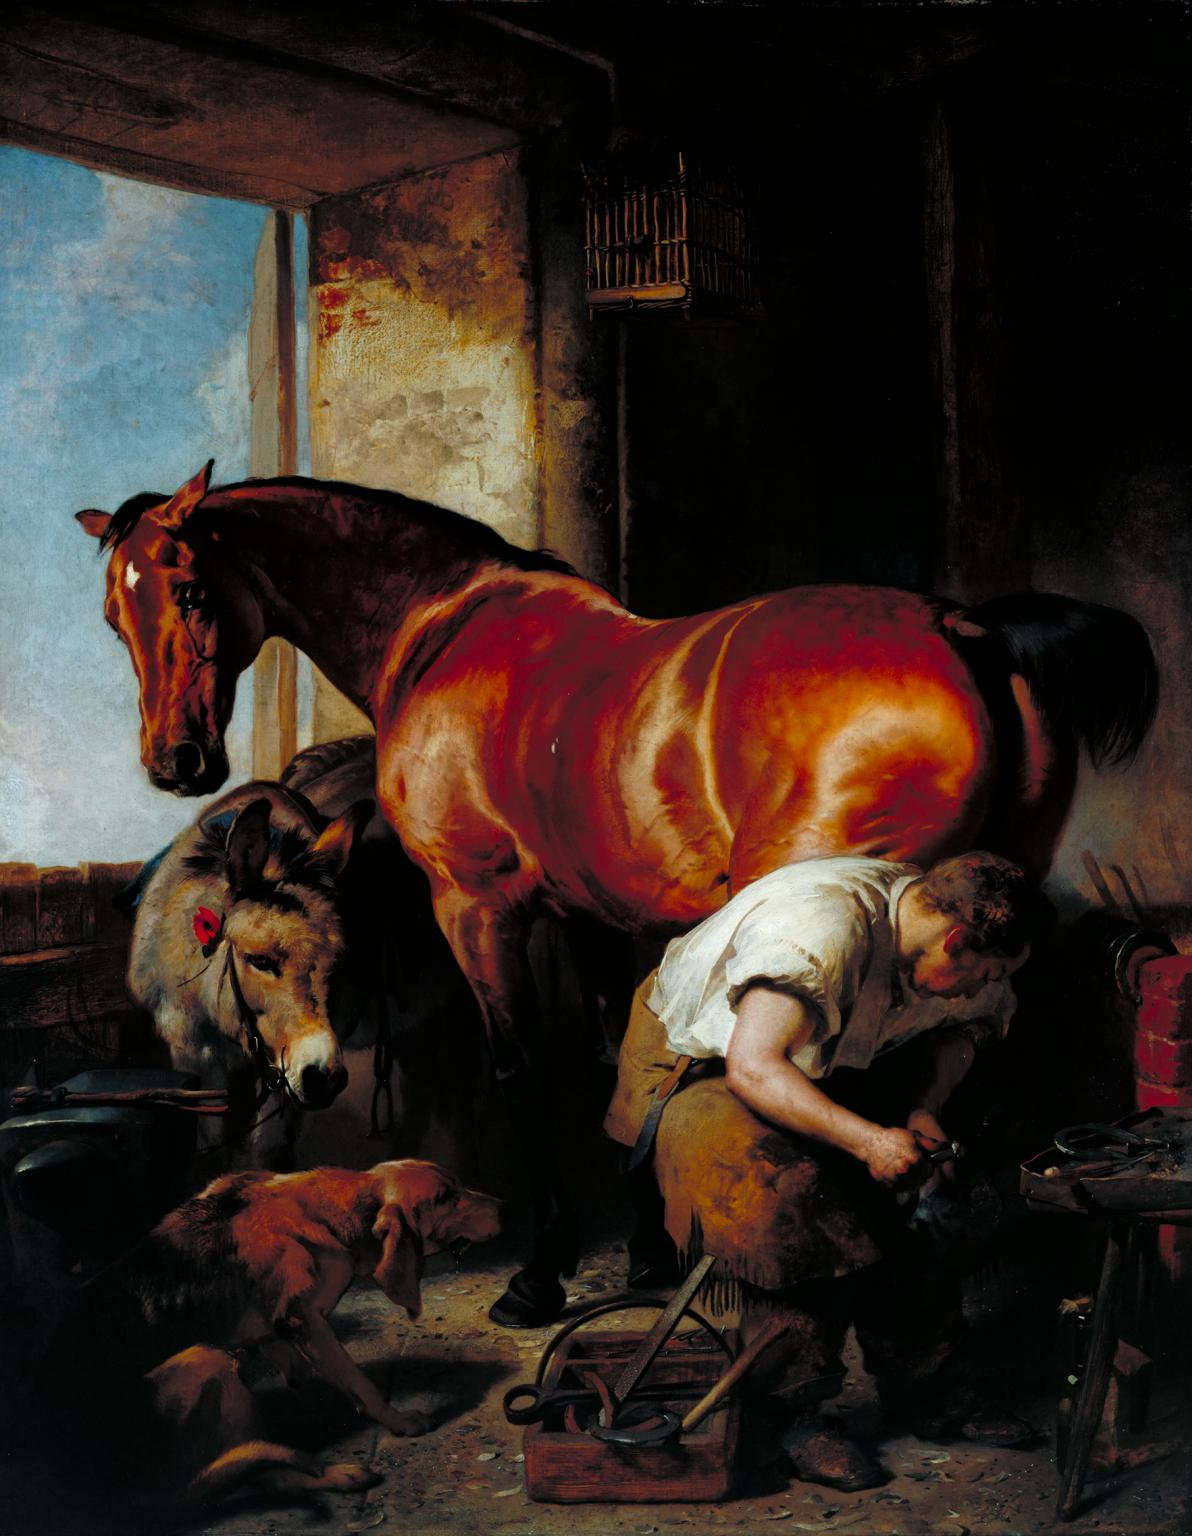 Shoeing, 1844 by Sir Edwin Henry Landseer 1802–1873, Photo © Tate  Image released under Creative Commons CC-BY-NC-ND (3.0 Unported)   https://www.tate.org.uk/art/artworks/landseer-shoeing-n00606